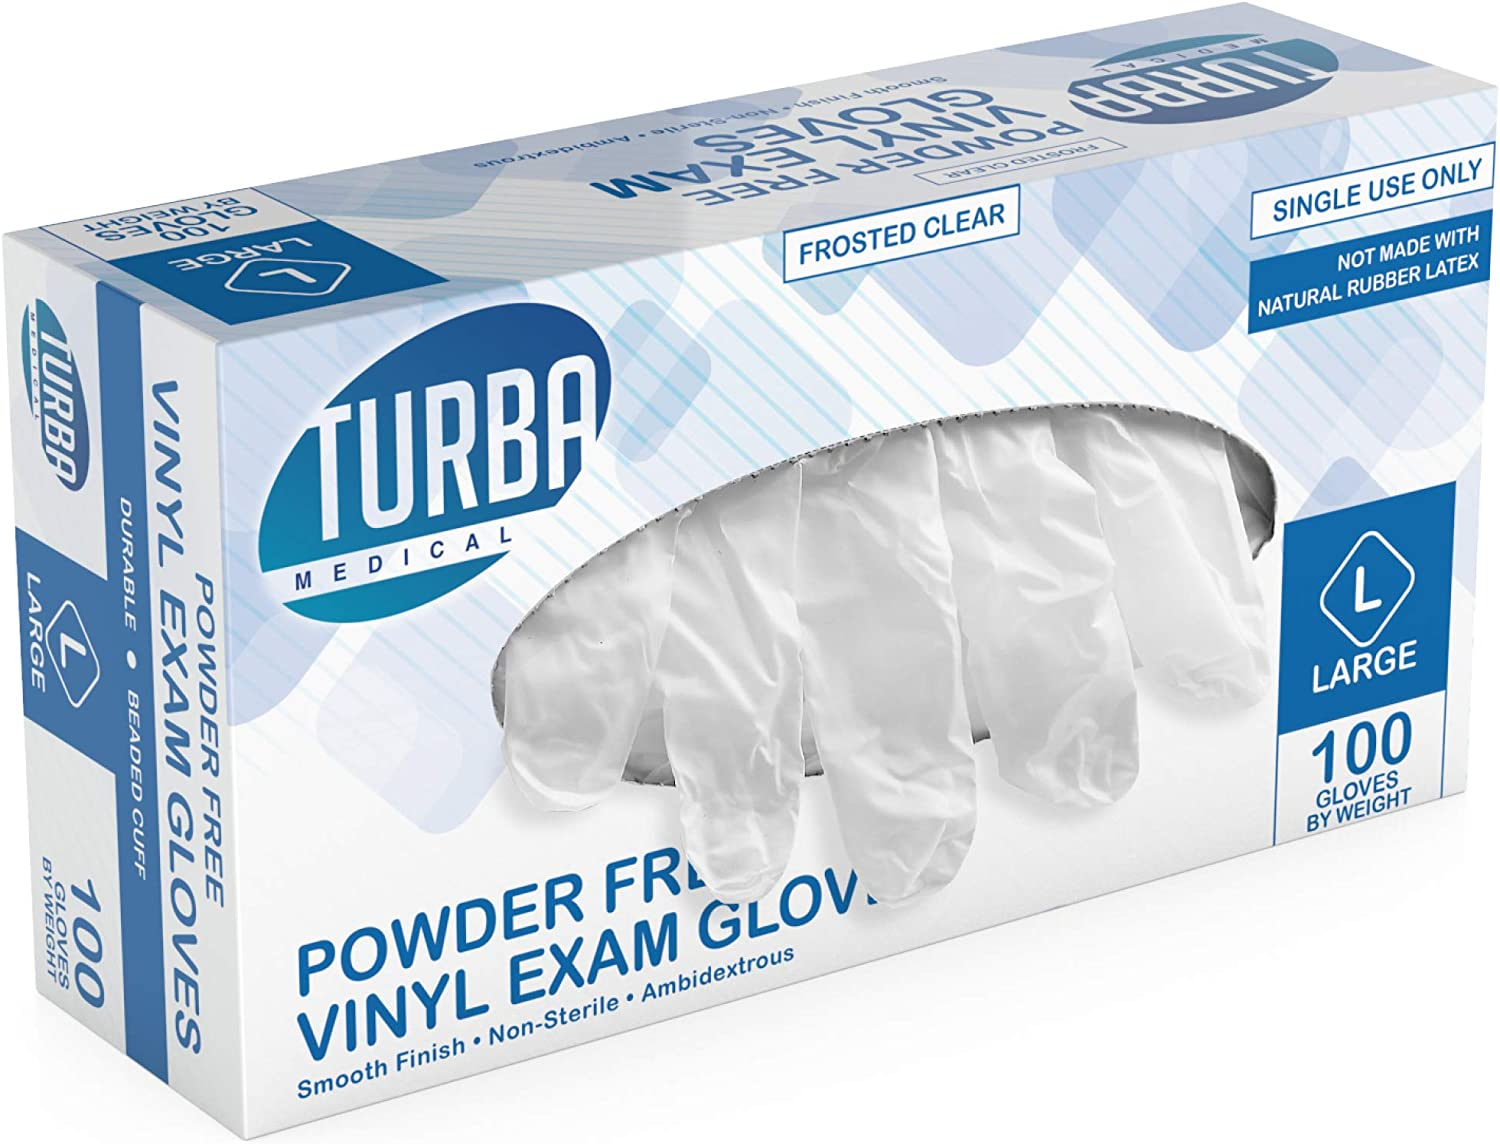 Disposable Vinyl Gloves, 100 Size Large Non Sterile, Powder Free, Latex Free - Examination Gloves, Cleaning Supplies, Kitchen and Food Safe - Ambidextrous - by Turba